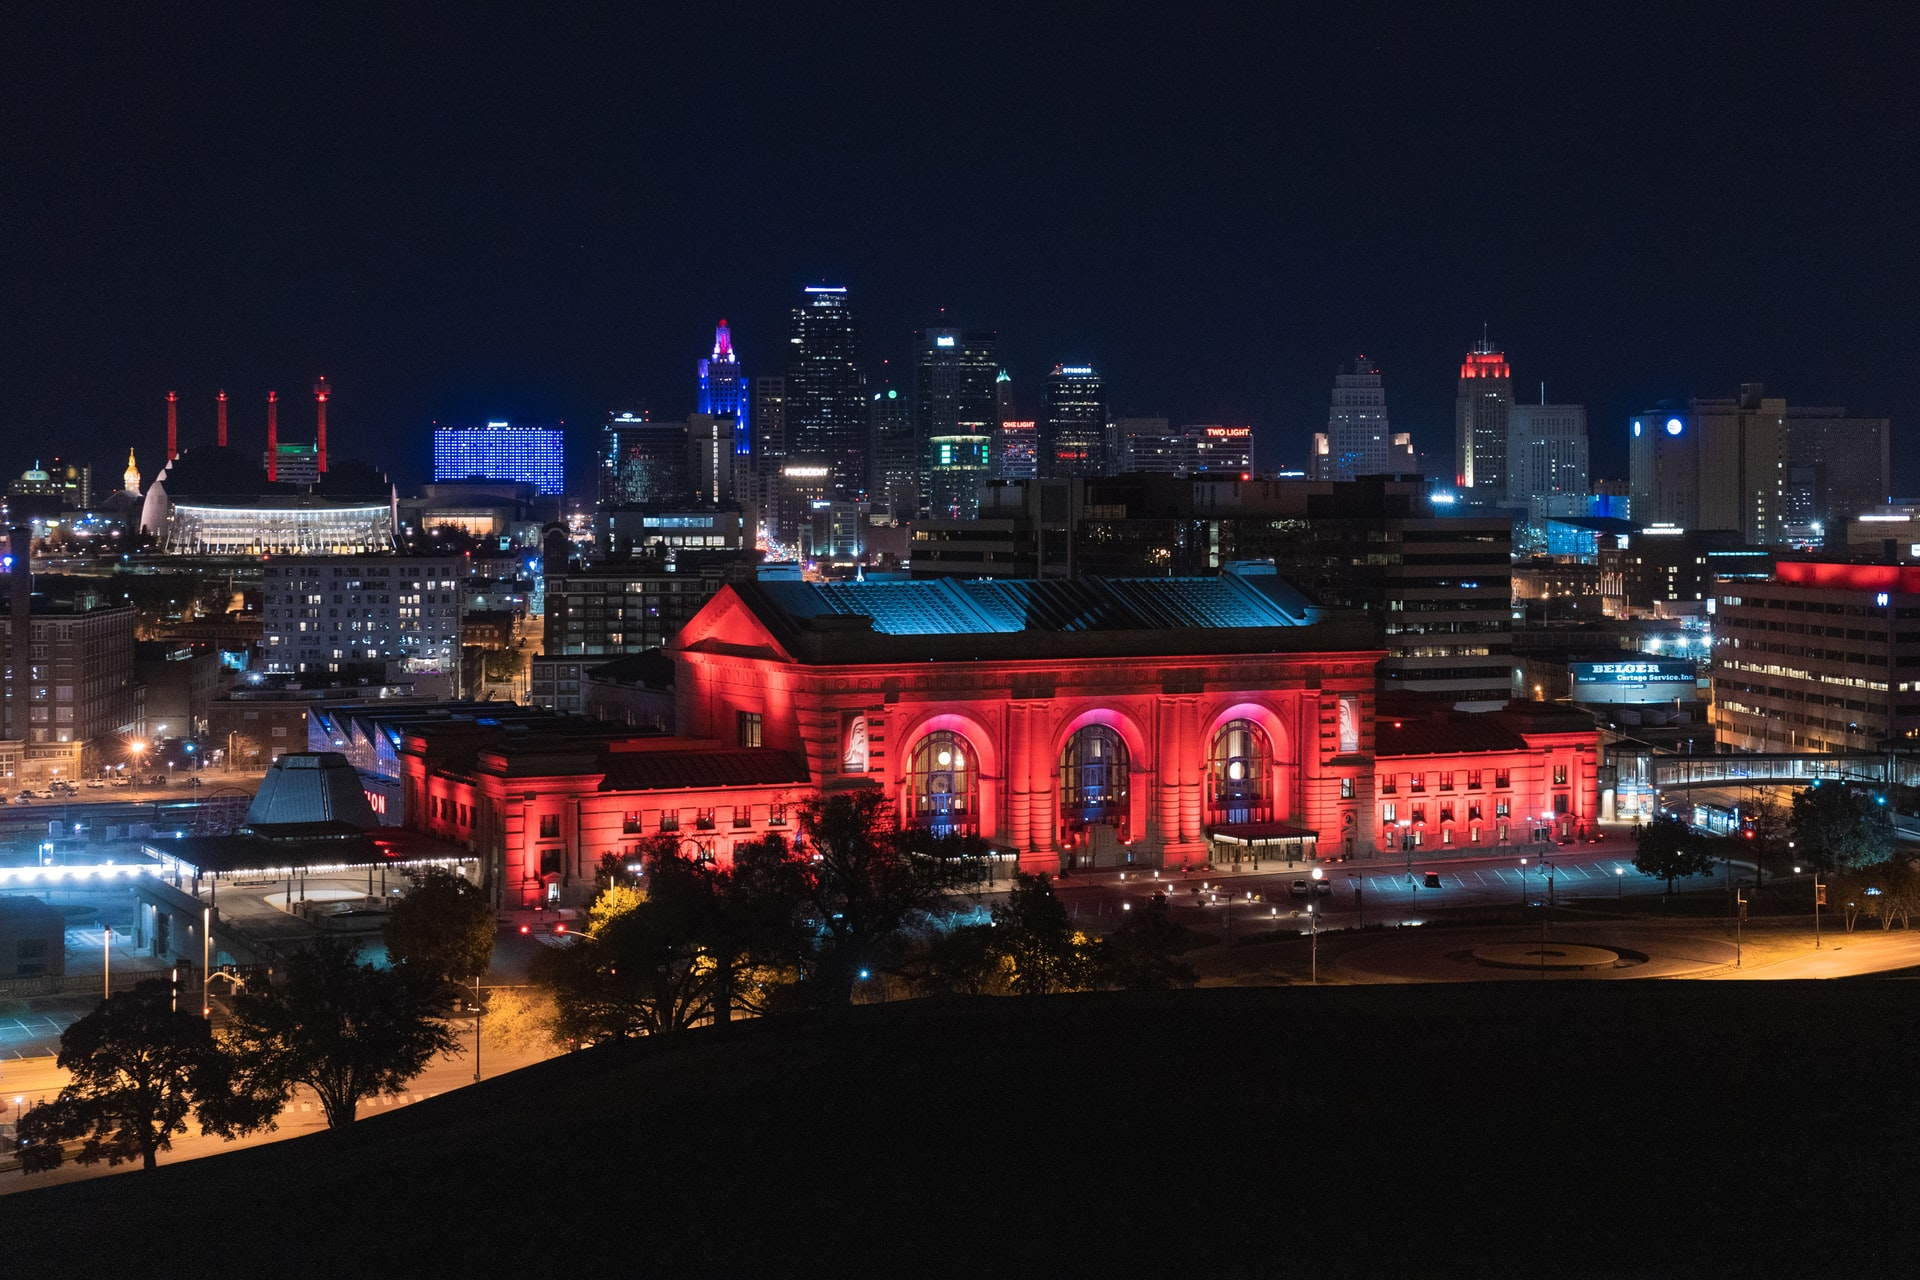 Visit Kansas City: Casinos, Barbecue and Much More!